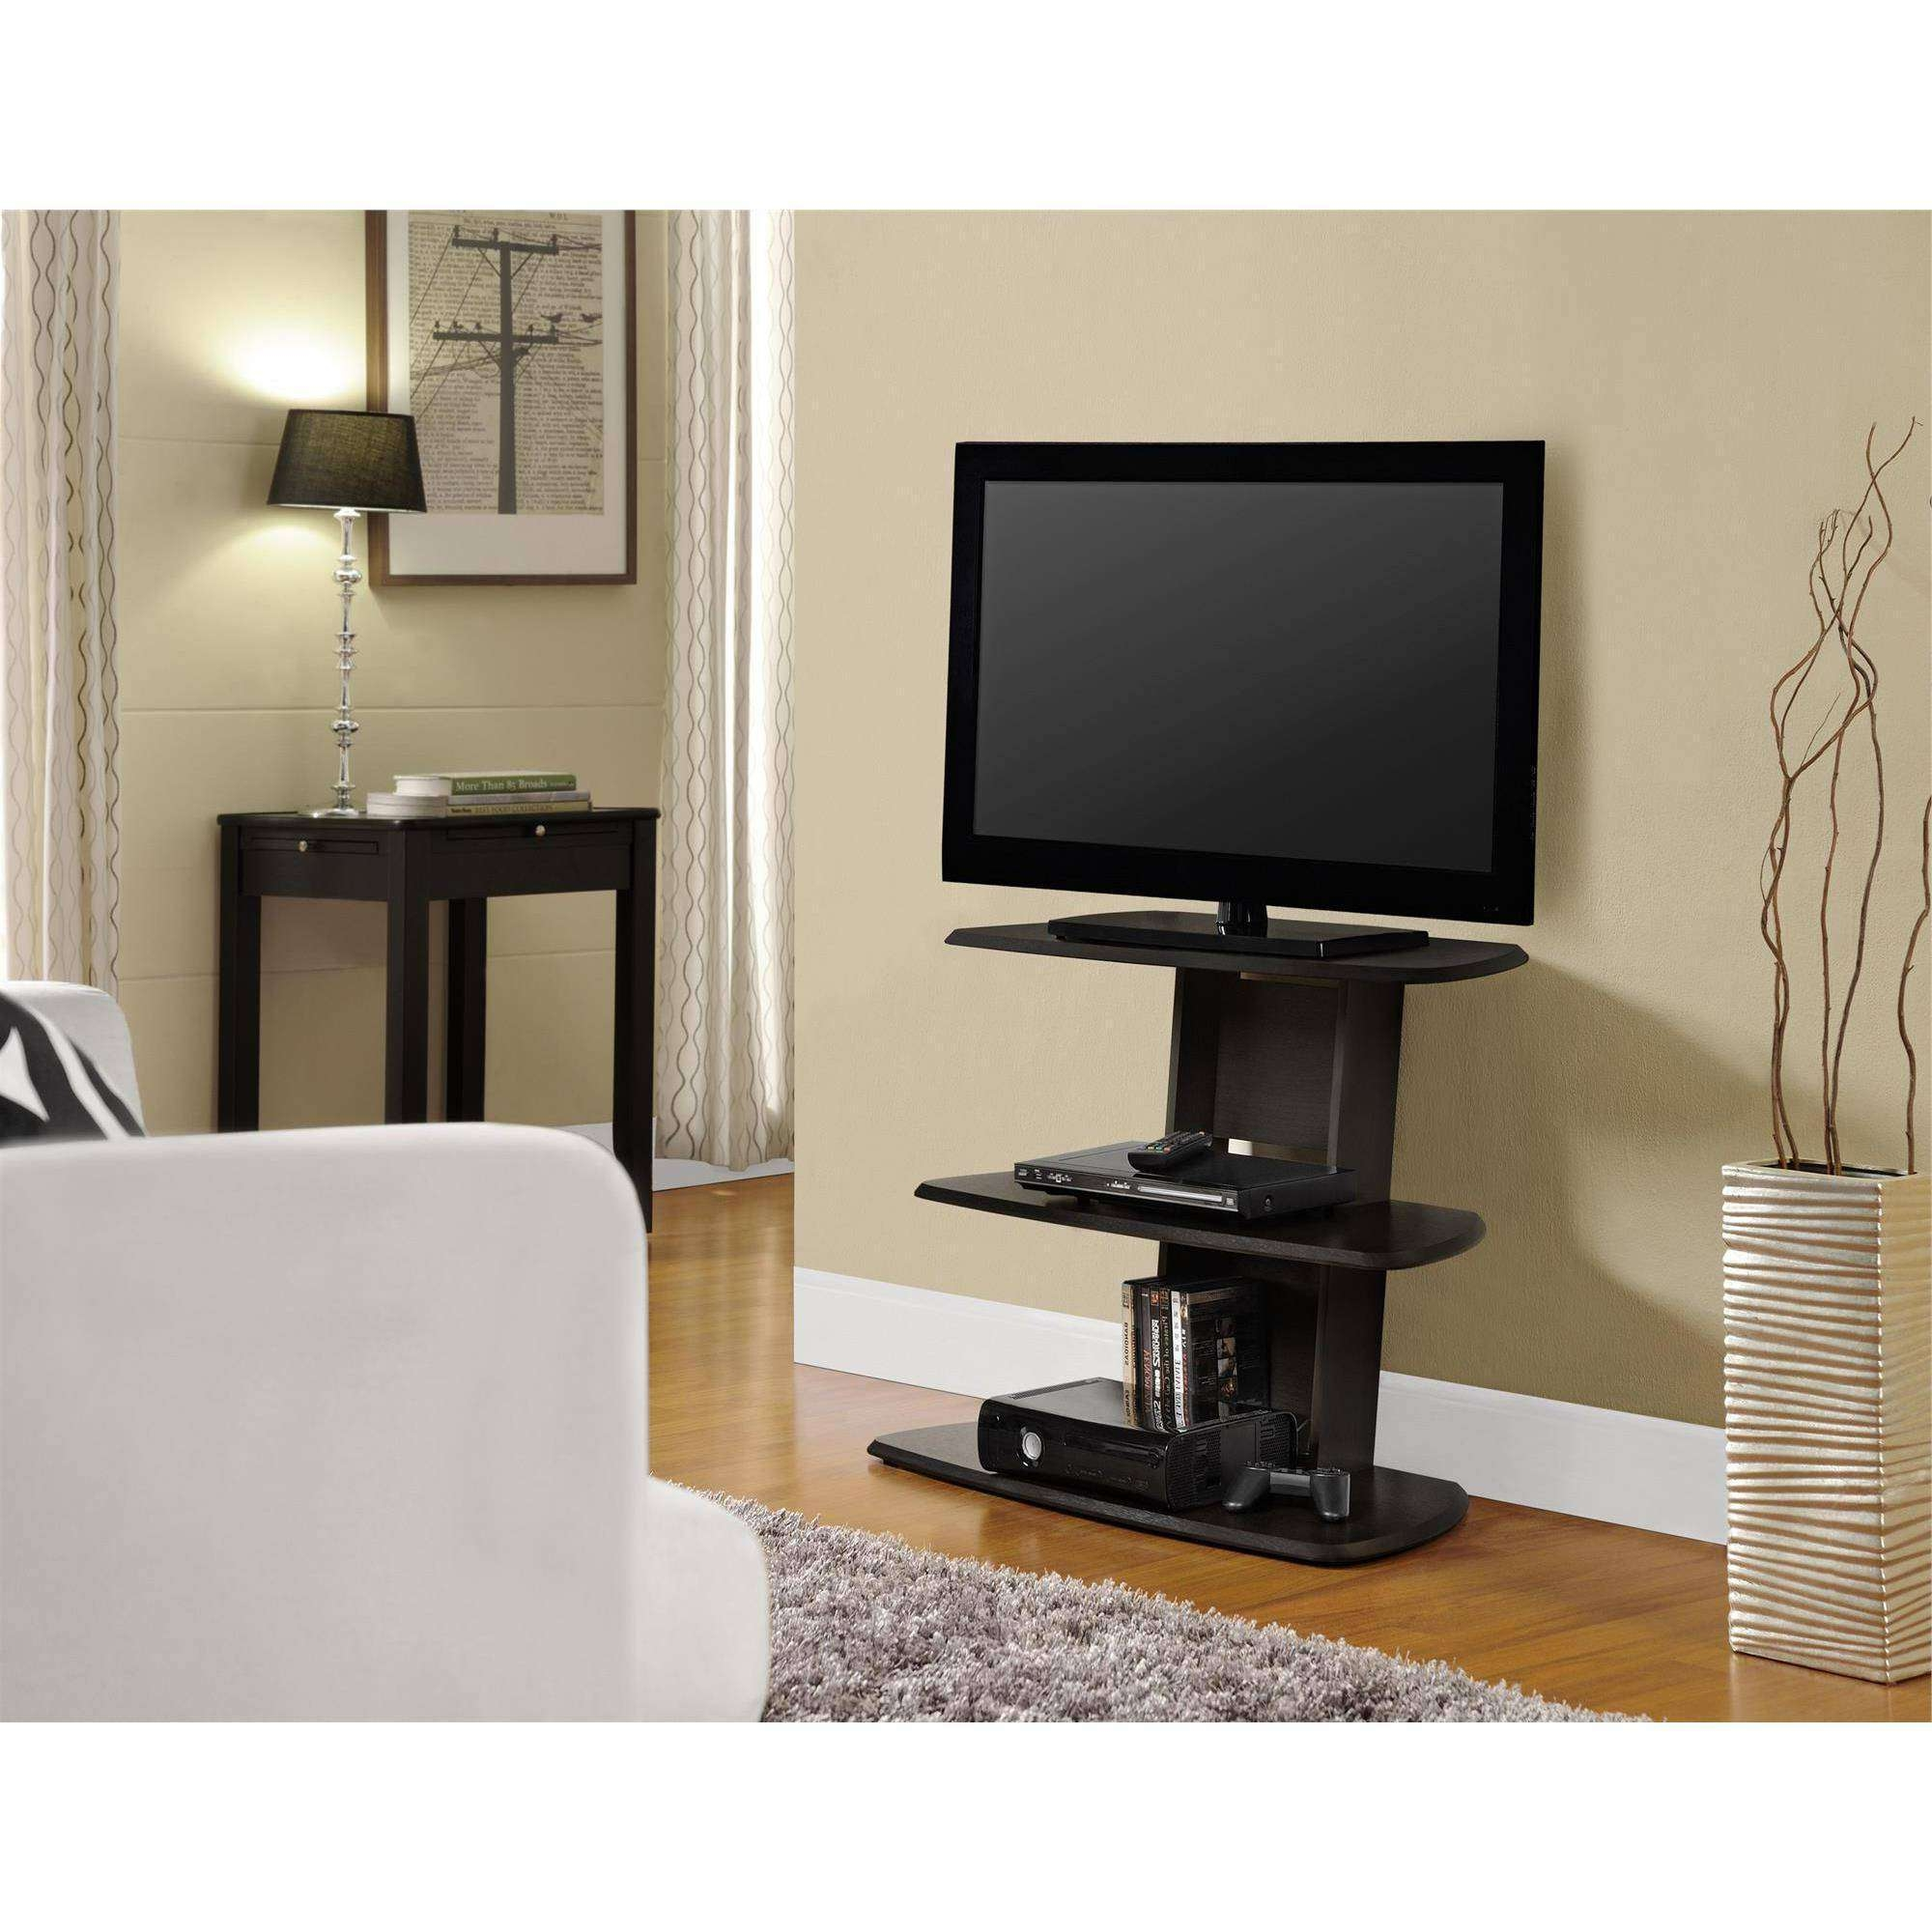 Get Tv Stand 32 Inch For Your Tv – Furniture Depot Within 32 Inch Tv Stands (View 2 of 15)